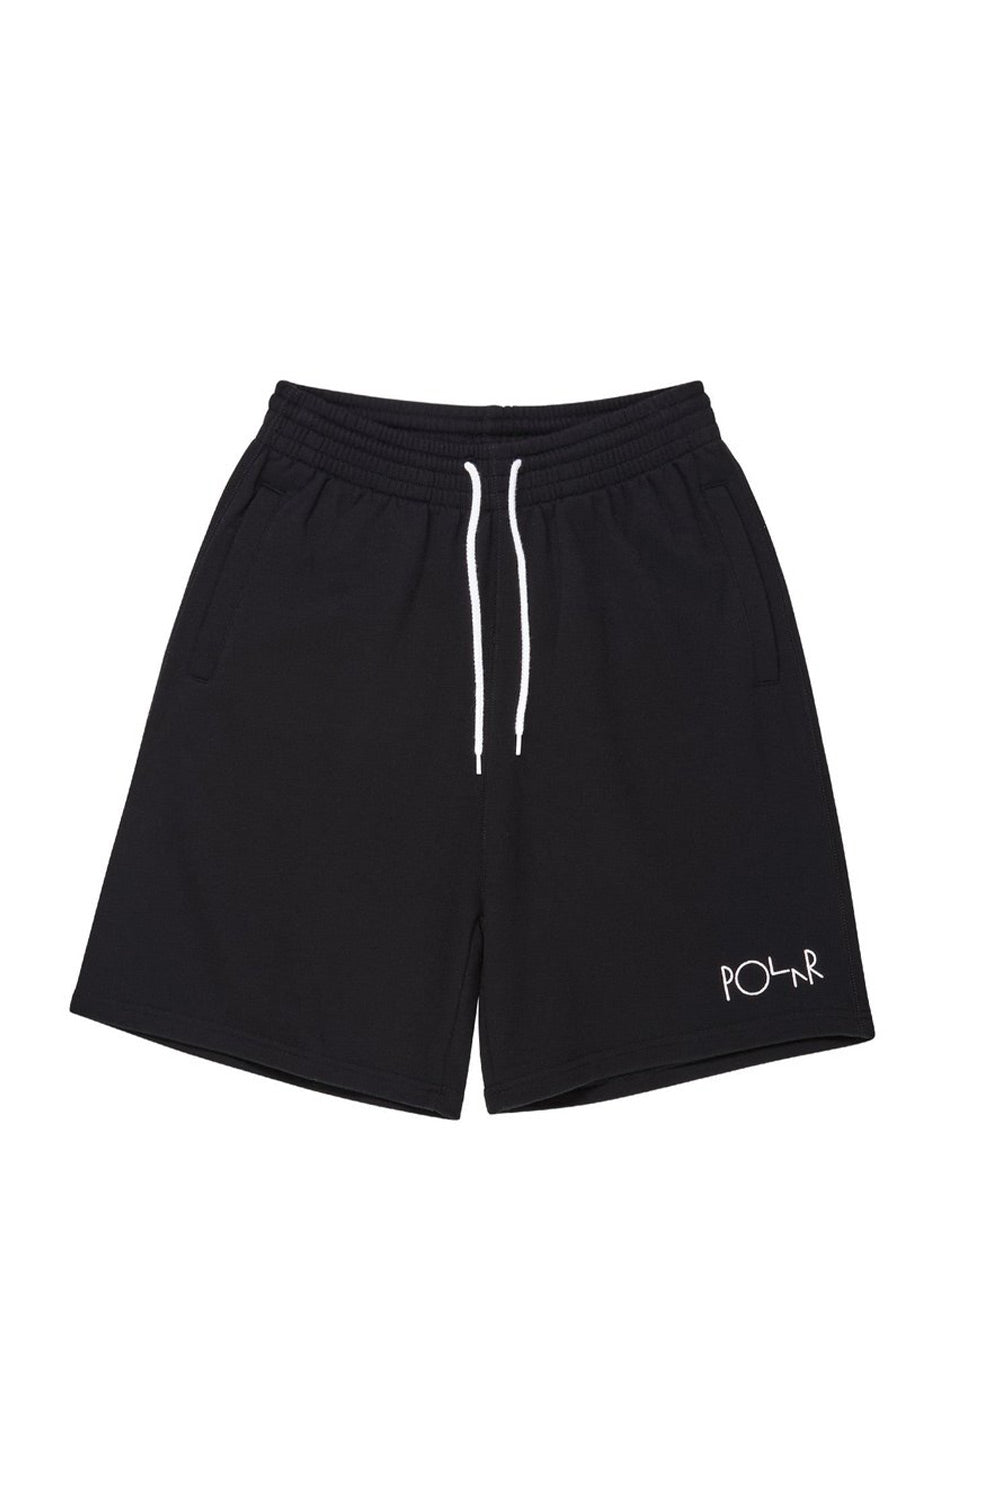 Polar Skate Co Default Sweat Shorts - Black